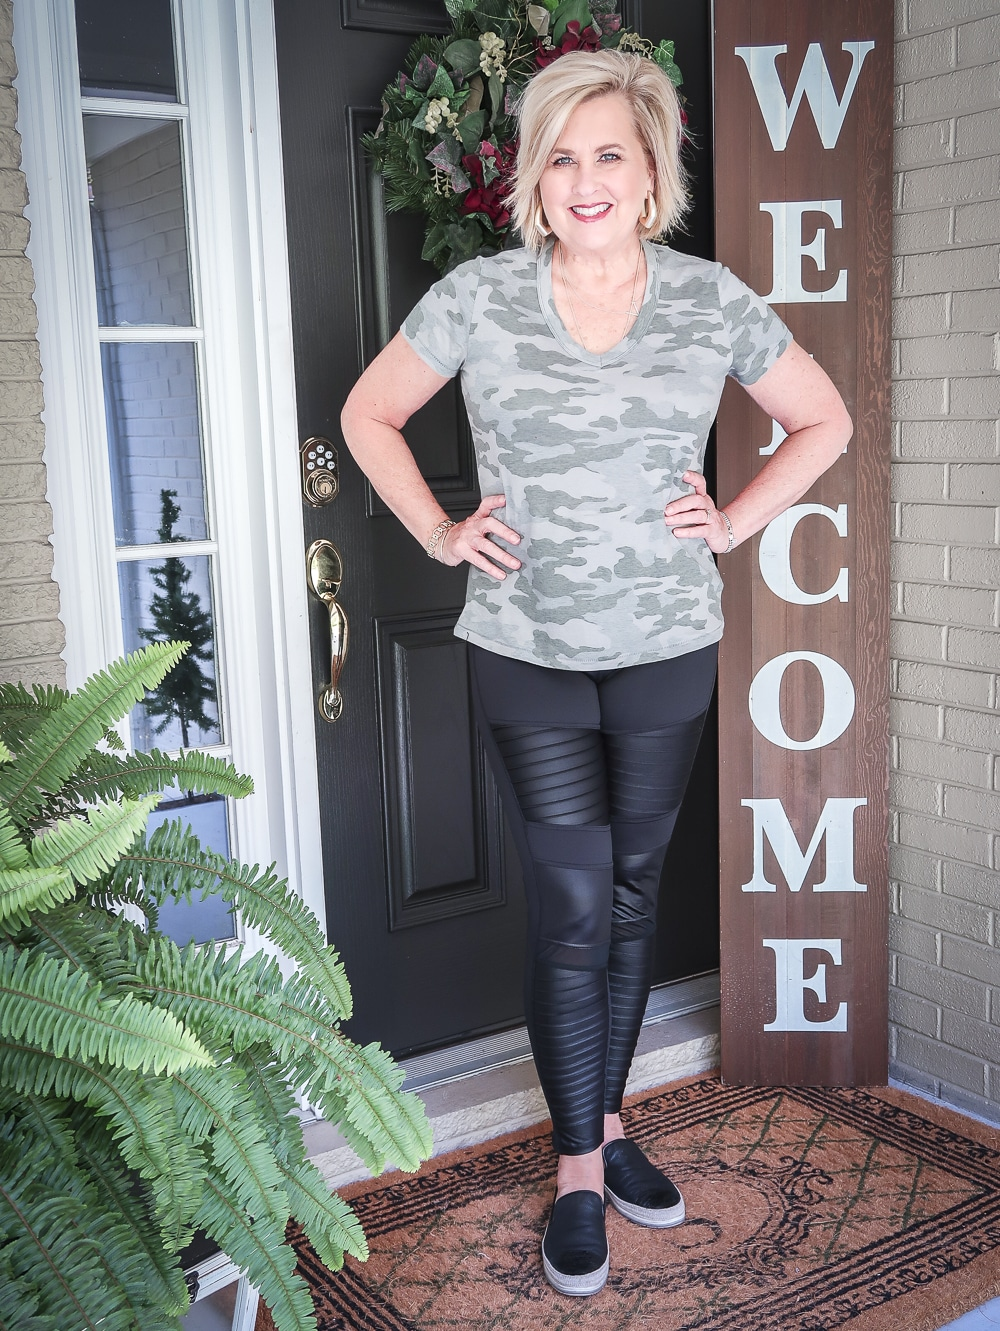 Fashion Blogger 50 Is Not Old is doing a Tuesday Try-On Session with Target and styling a camo v-neck tee shirt with black moto leggings